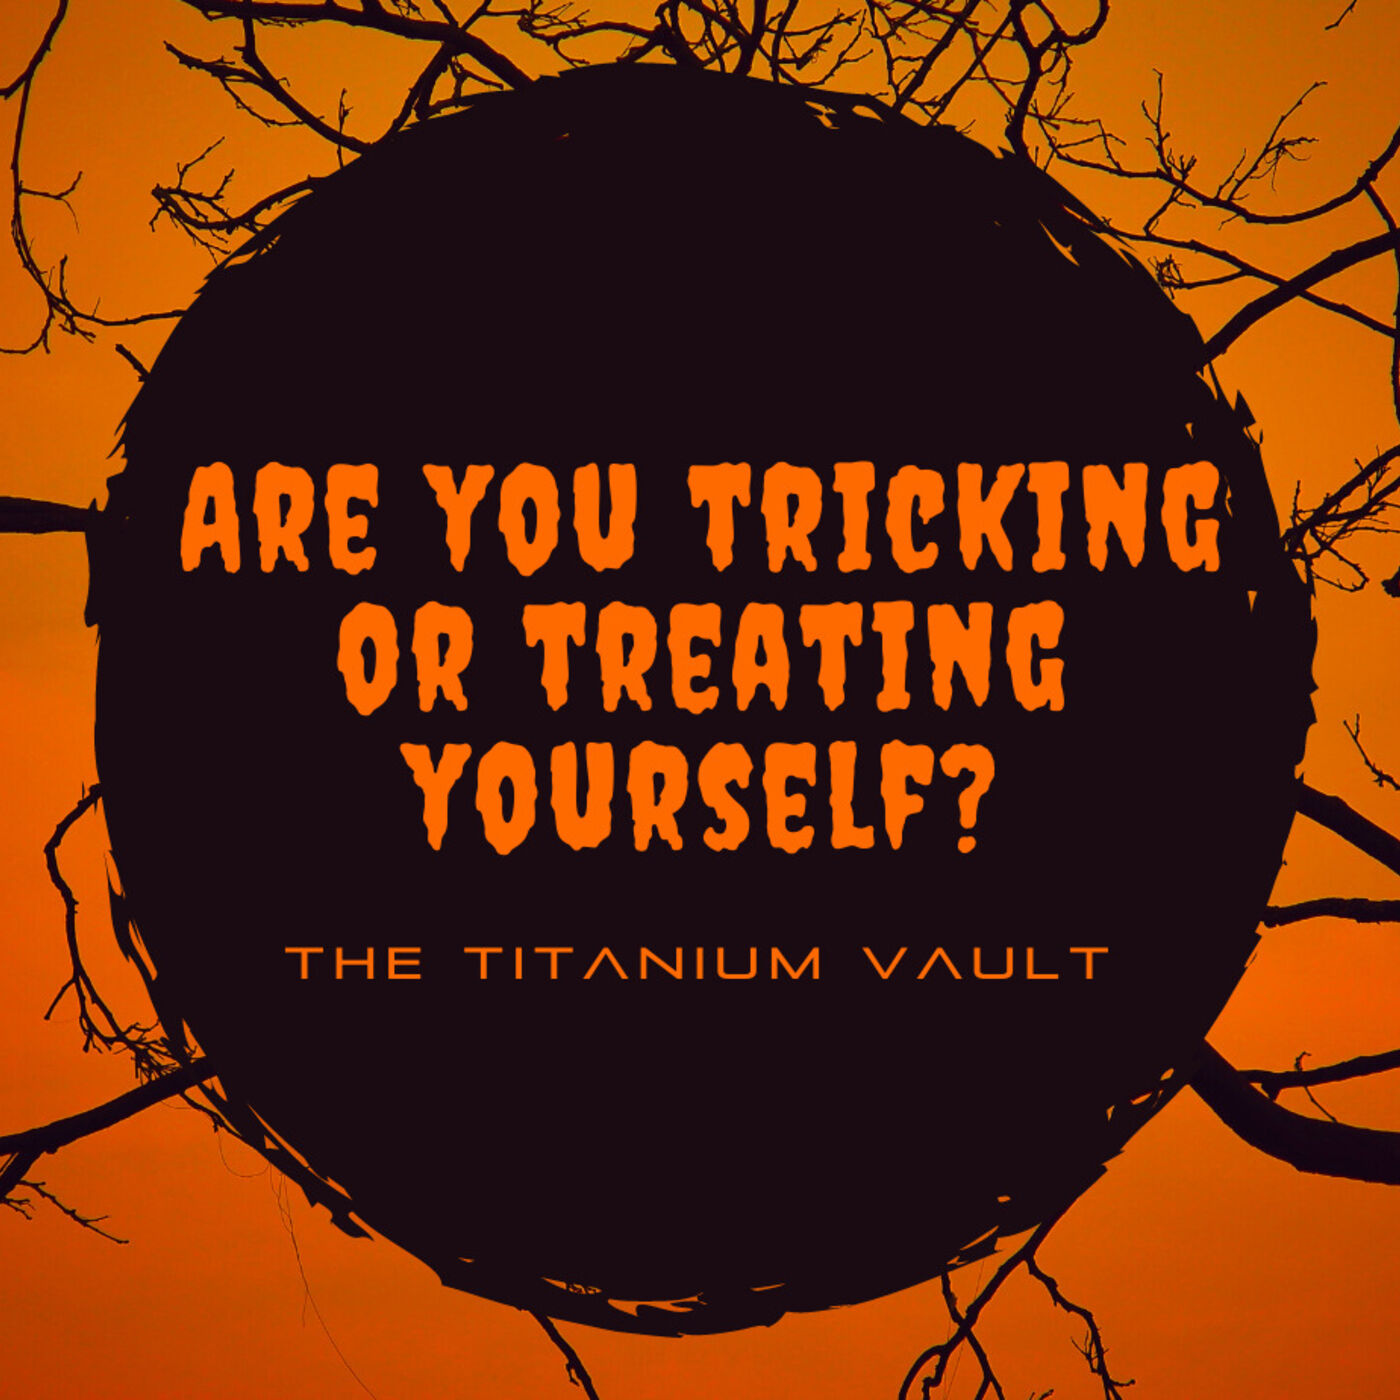 Are You Tricking or Treating Yourself?